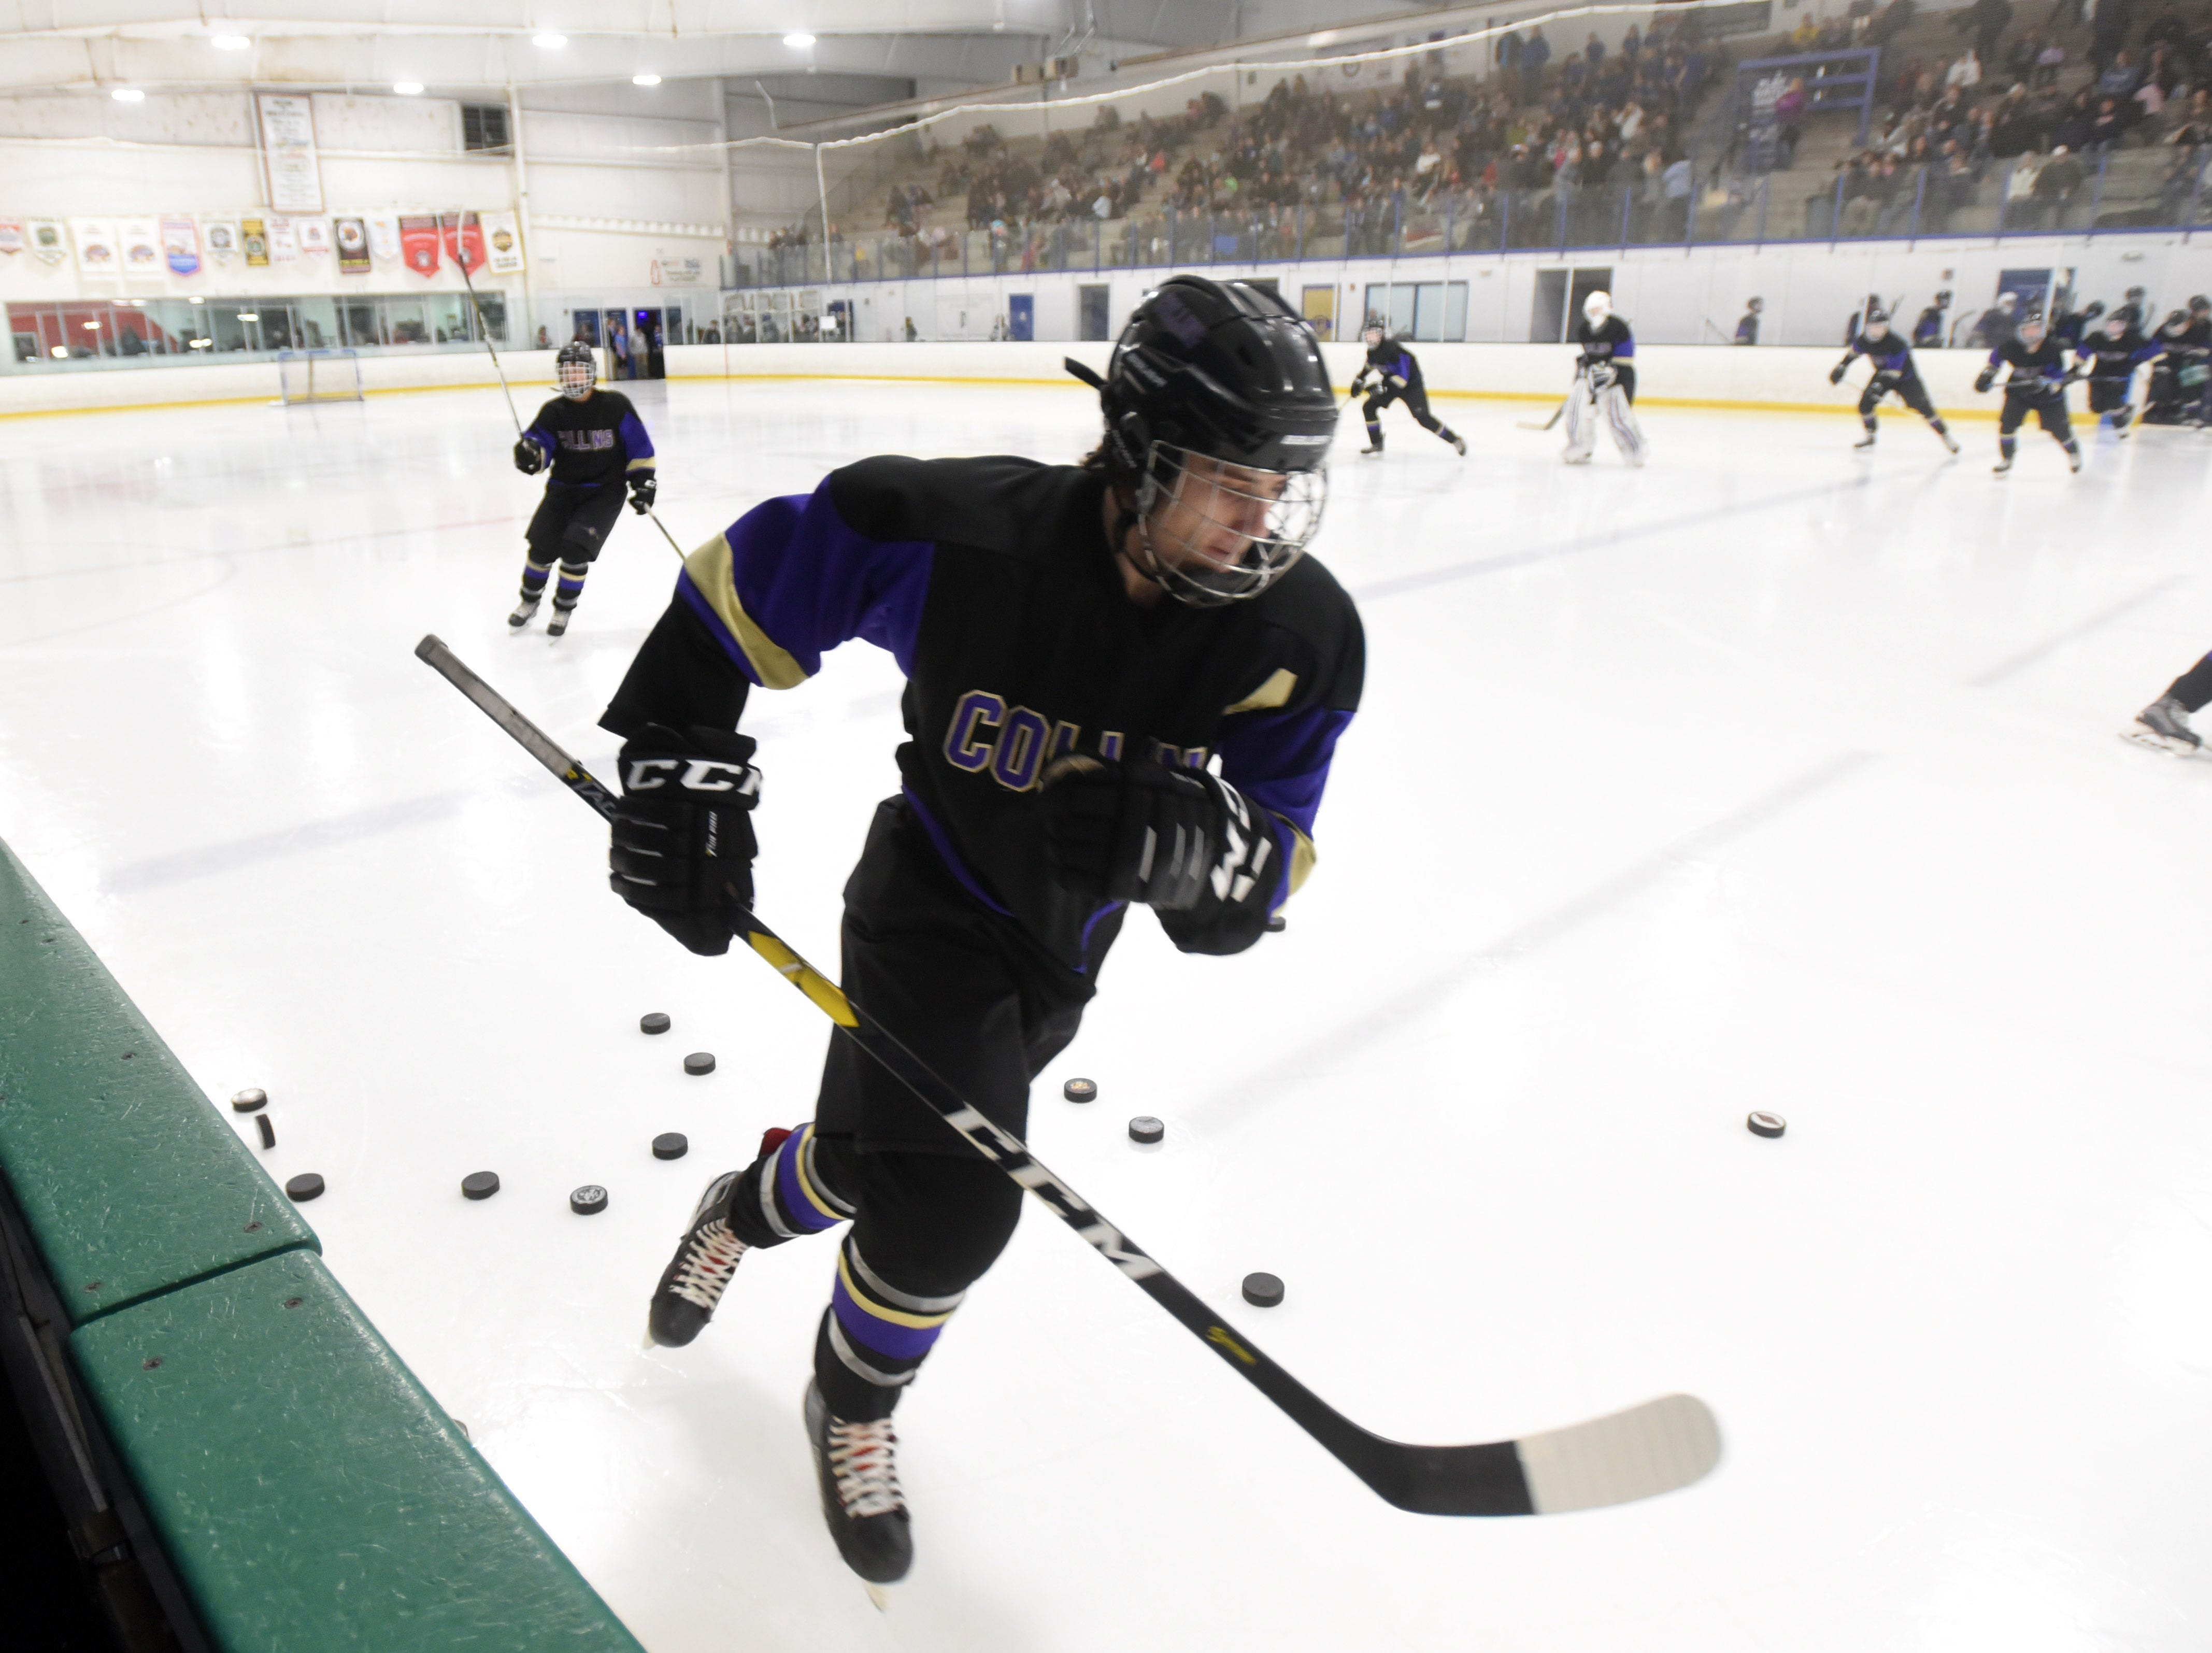 Fort Collins' Ethan Nelson skates onto the ice during warmups before the game against Resurrection Christian on Saturday at, Feb 2, at NoCo Ice Center, 7900 N Fairgrounds Ave, in Fort Collins.